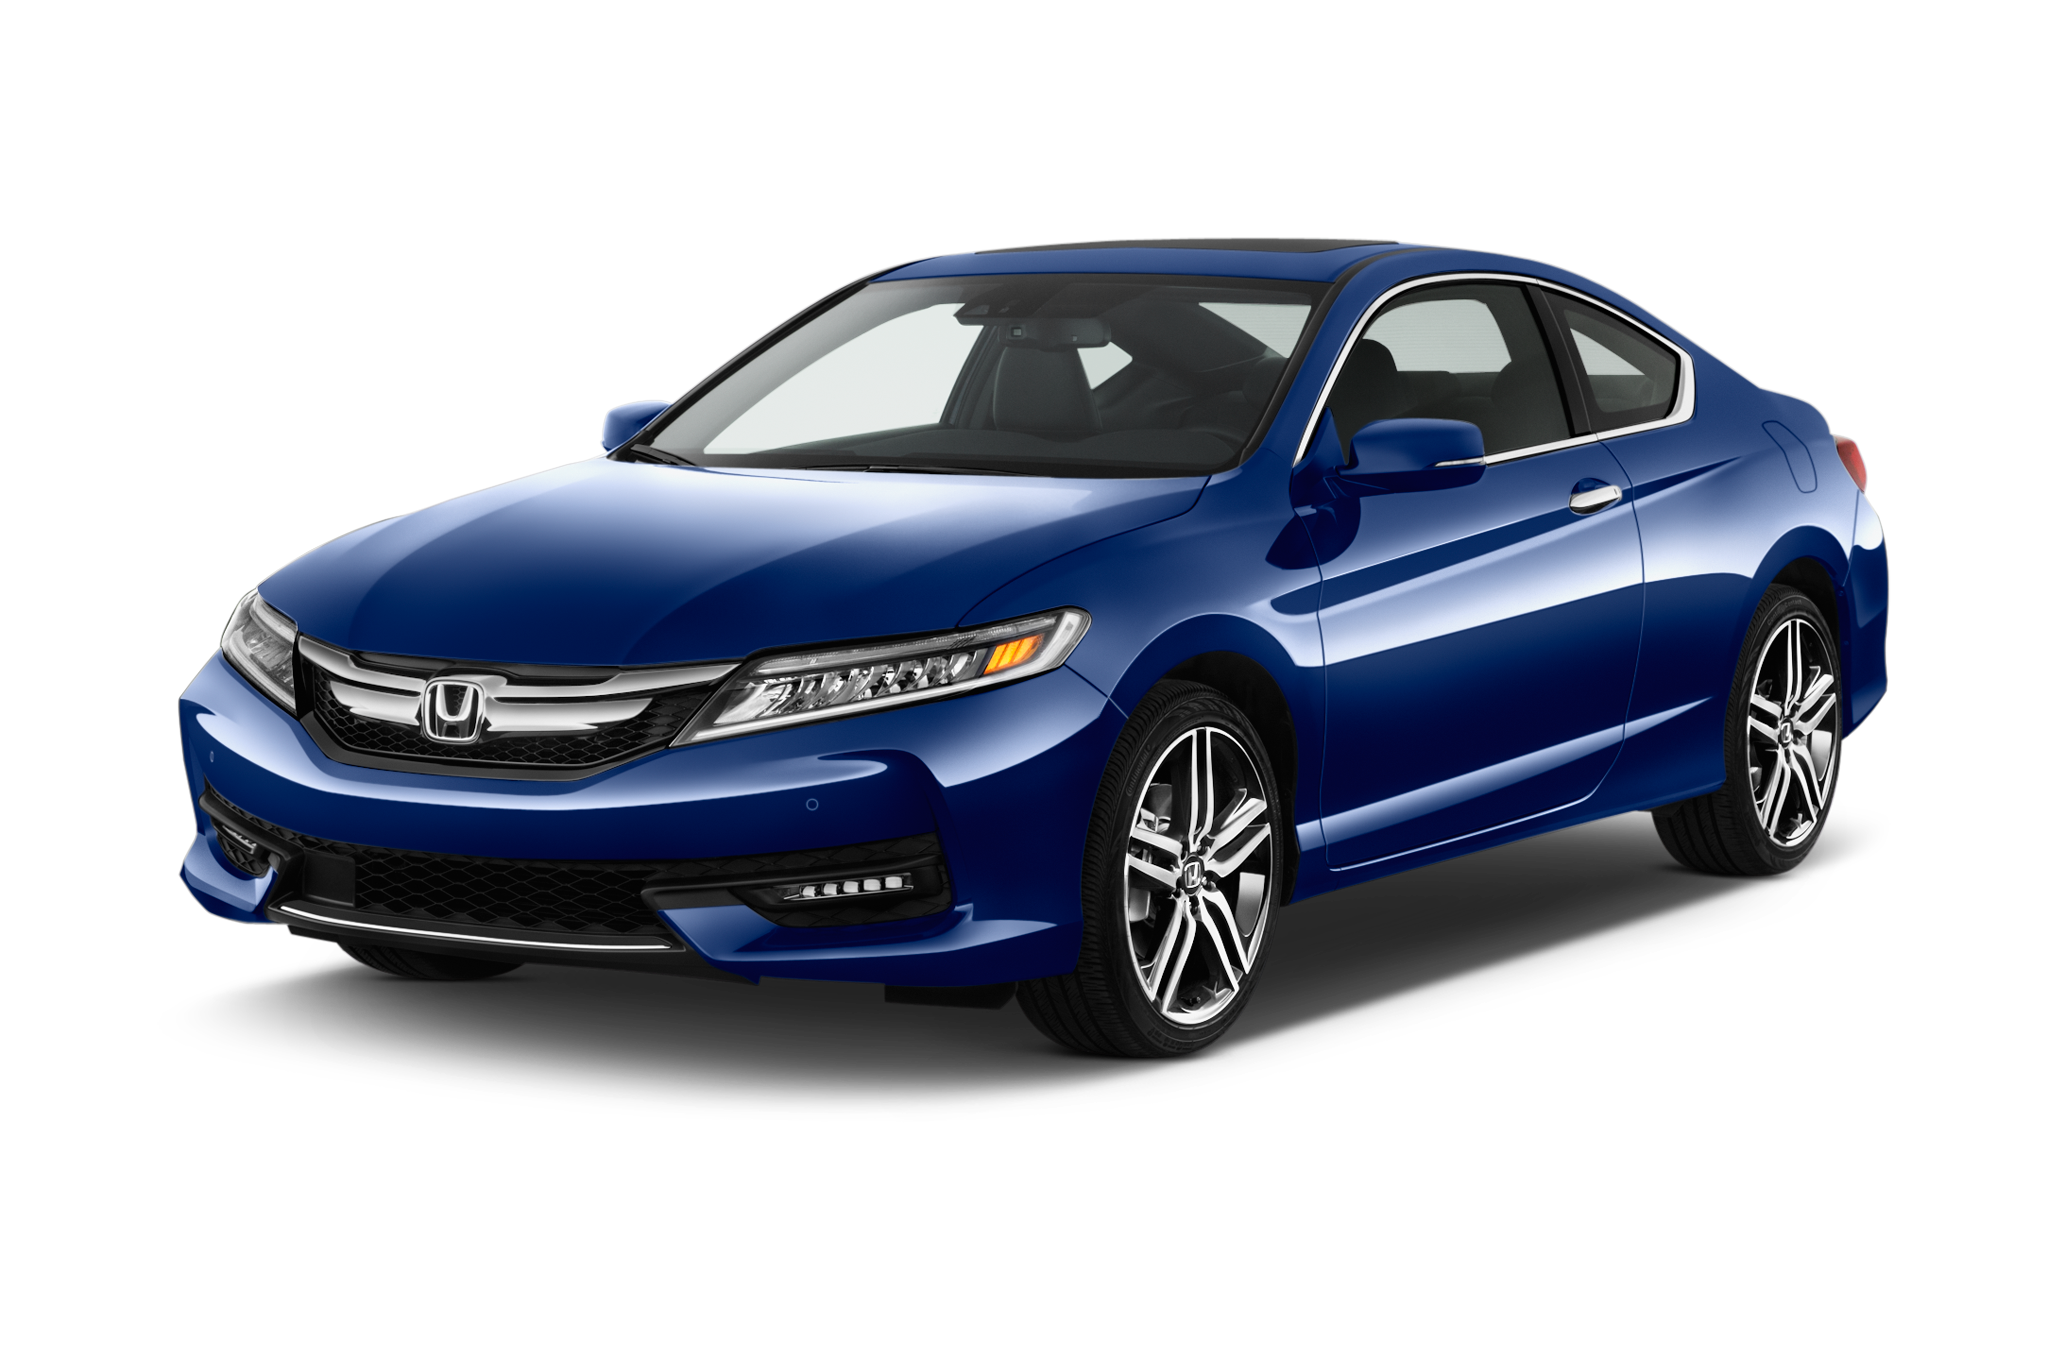 2016 honda accord touring auto coupe reviews msn autos. Black Bedroom Furniture Sets. Home Design Ideas